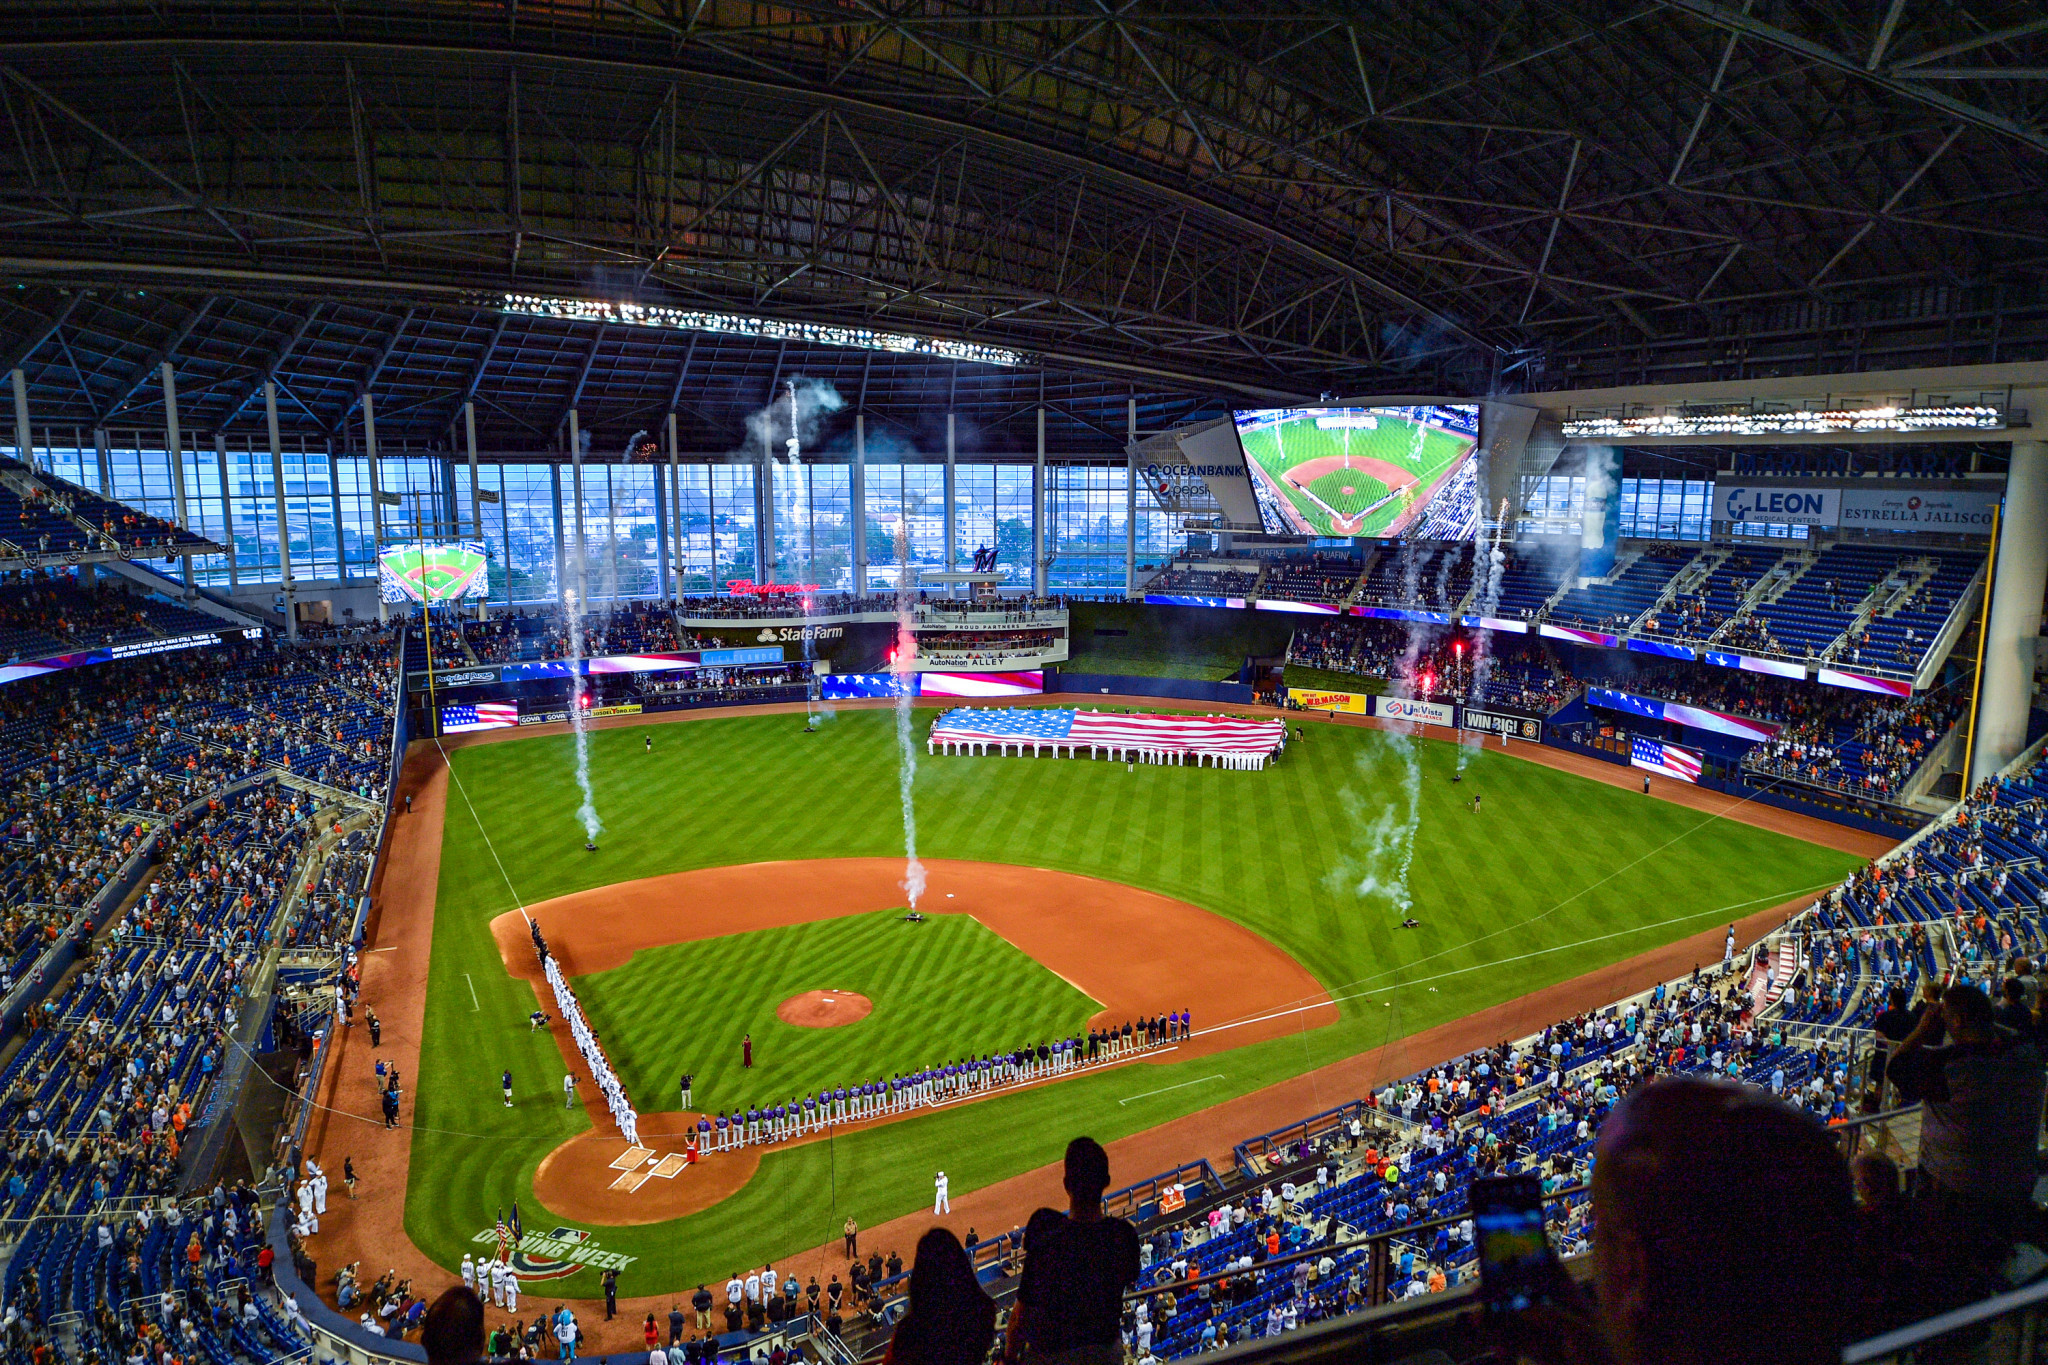 Marlins Park will host the 2021 World Baseball Classic final ©Getty Images